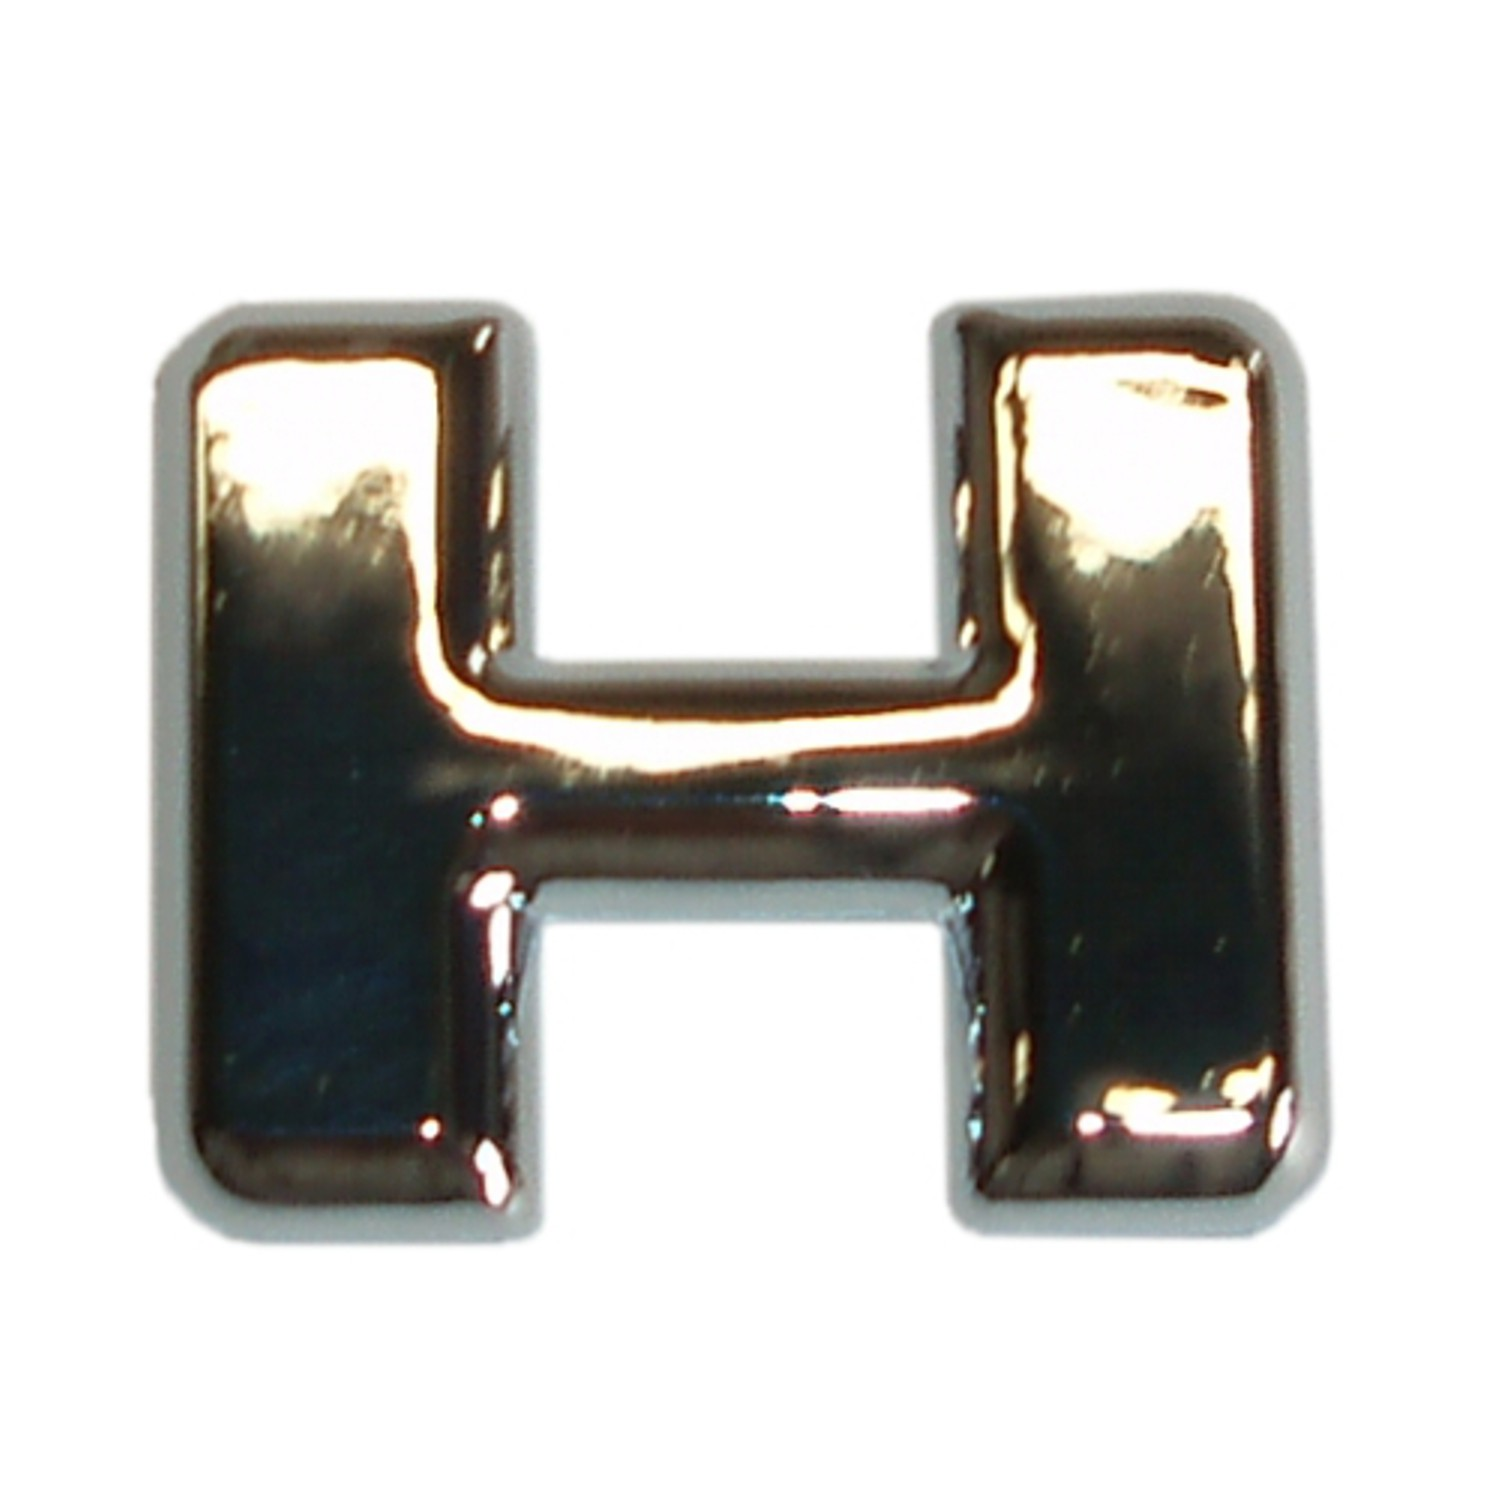 3D-Relief-Chrome-Buchstabe H